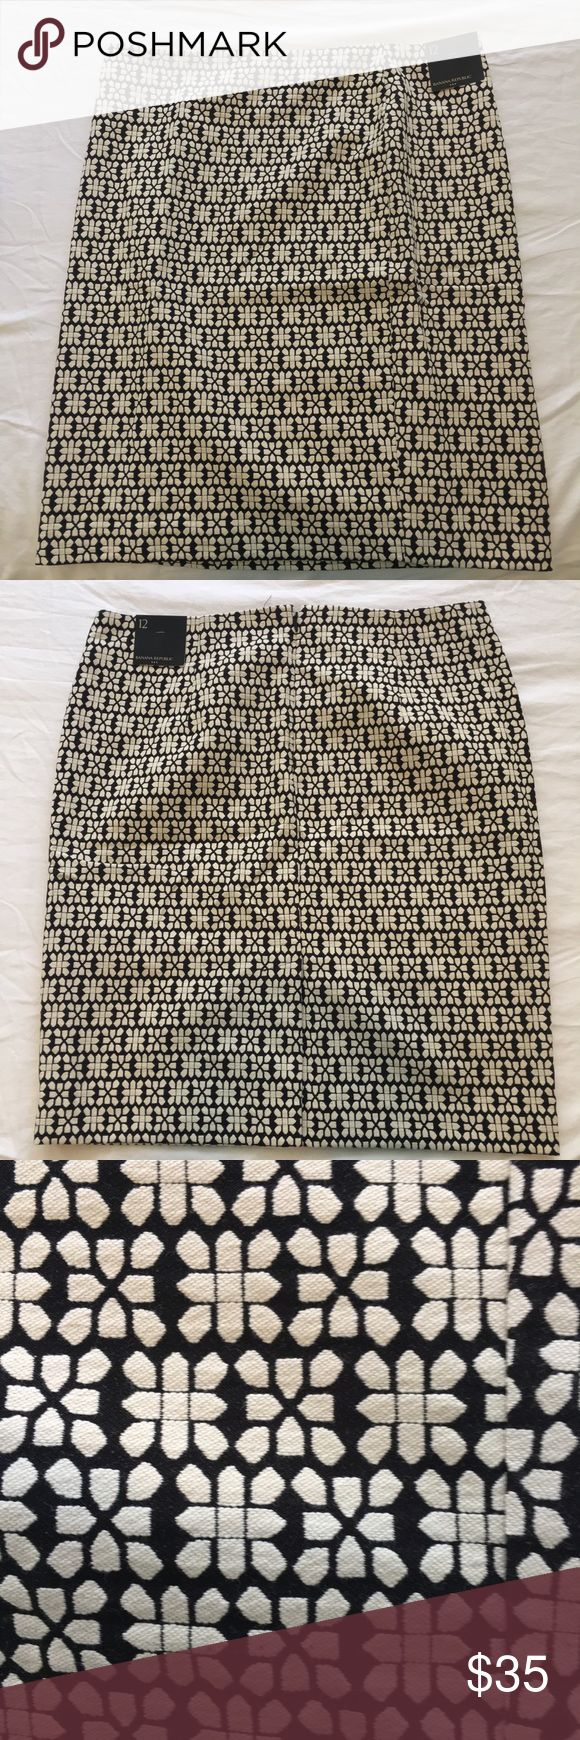 NEW! Banana Republic blk/ivory Pencil Skirt Banana Republic Factory Pencil Skirt with a cool geometric print DETAILS:  Size: 12  Fit:  Pencil Color: Ivory (off white) & black  Material:  Cotton & acrylic (see picture), invisible zipper  Condition: New, never worn  NOTE - everything in my closet is 100% authentic.  Open to offers. I always respond with my best and final. Please feel free to ask questions.  All sales are final. Banana Republic Skirts Pencil